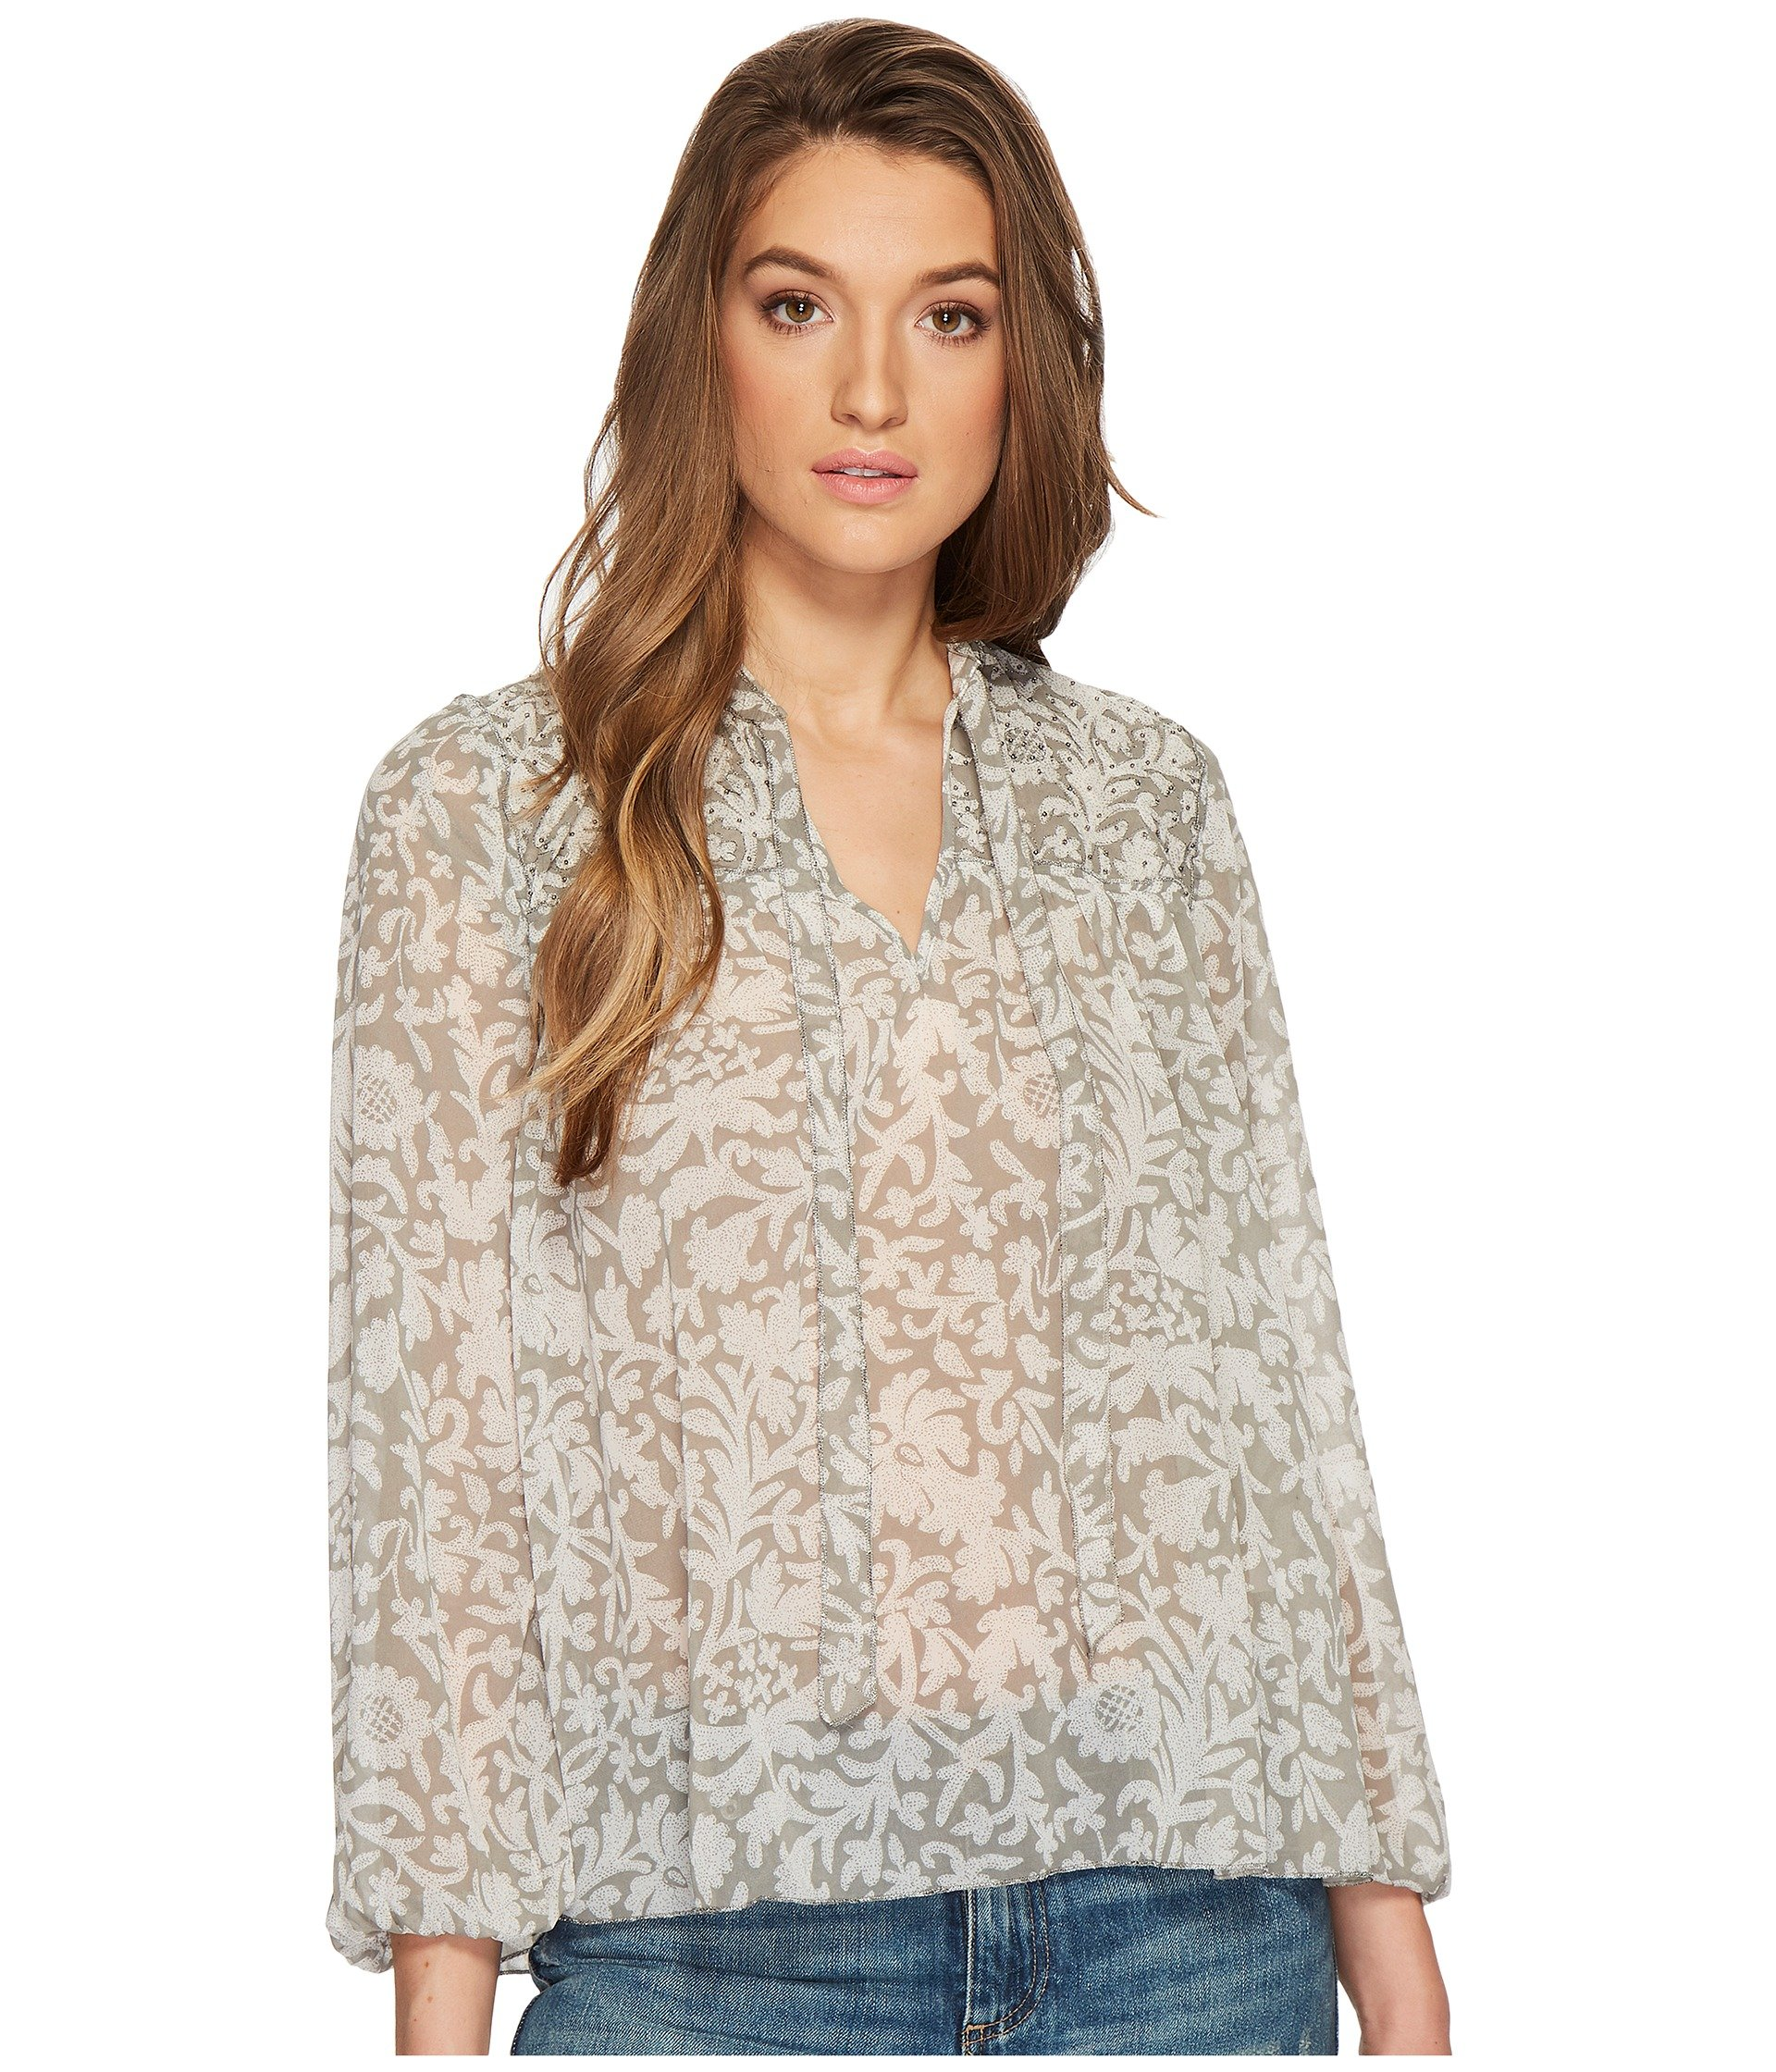 BEADED FLORAL PEASANT TOP